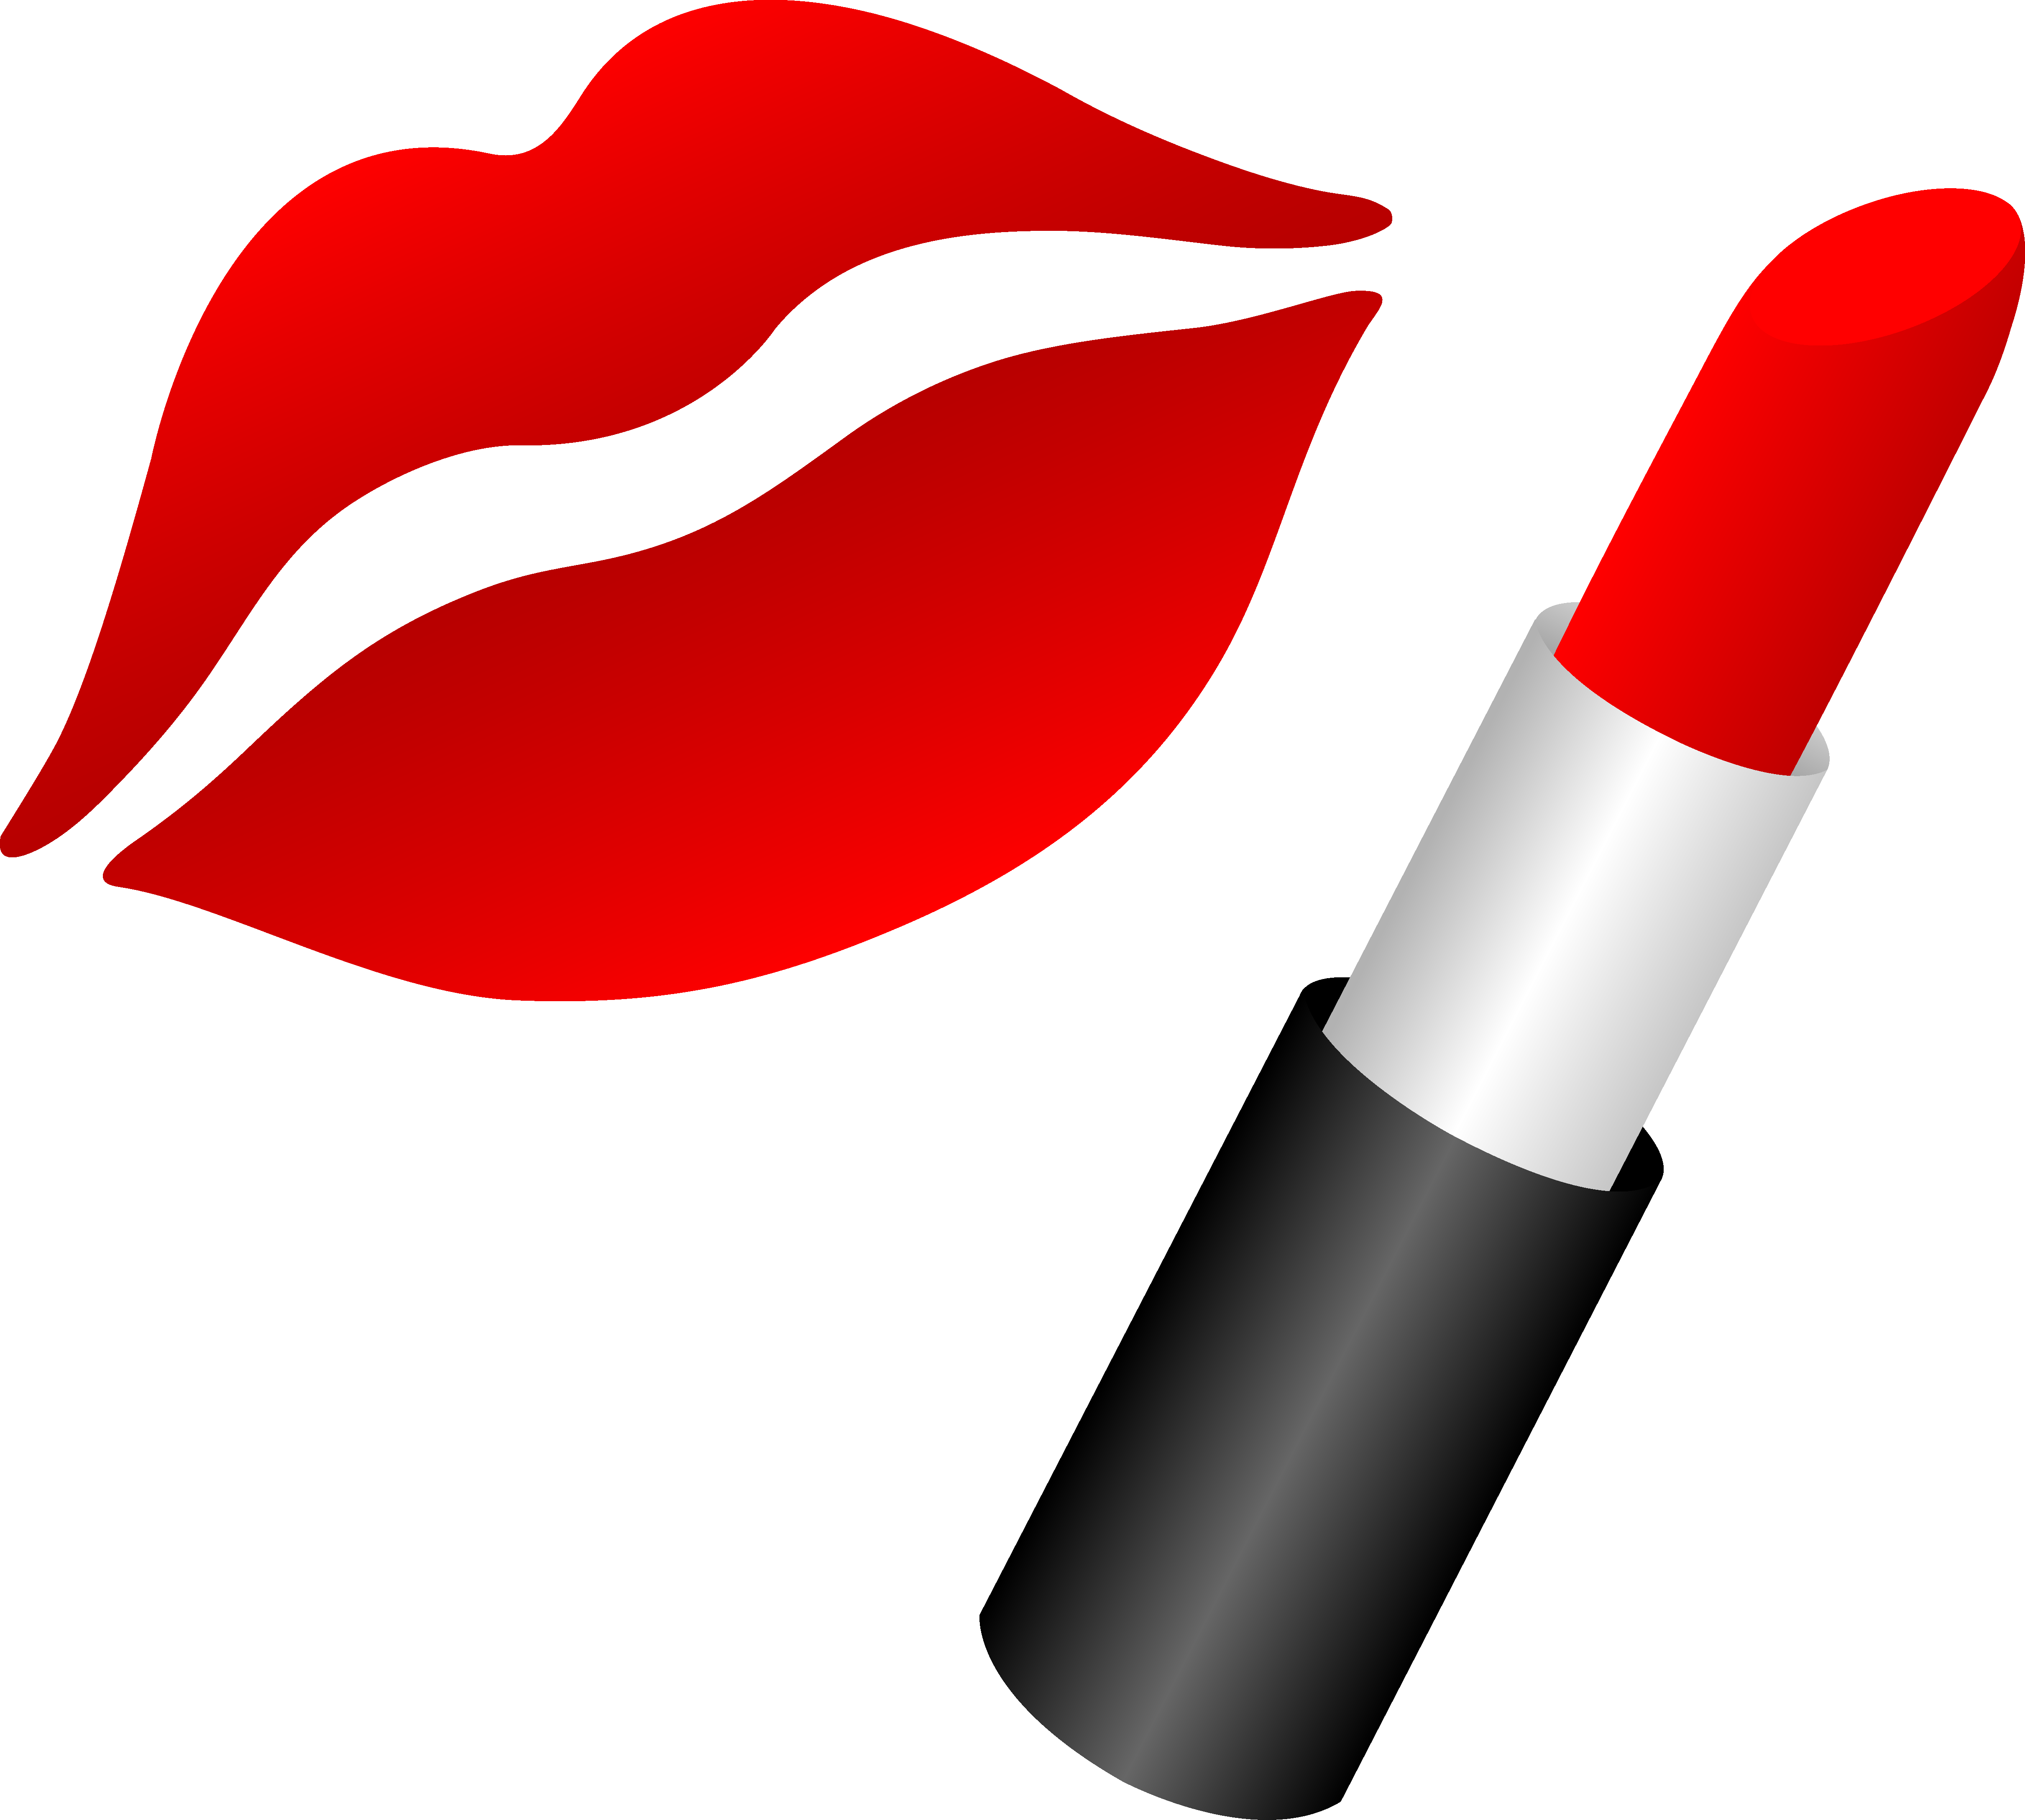 Rote Mascara Lips With Red Lipstick Free Clip Art Red Lips Lippen